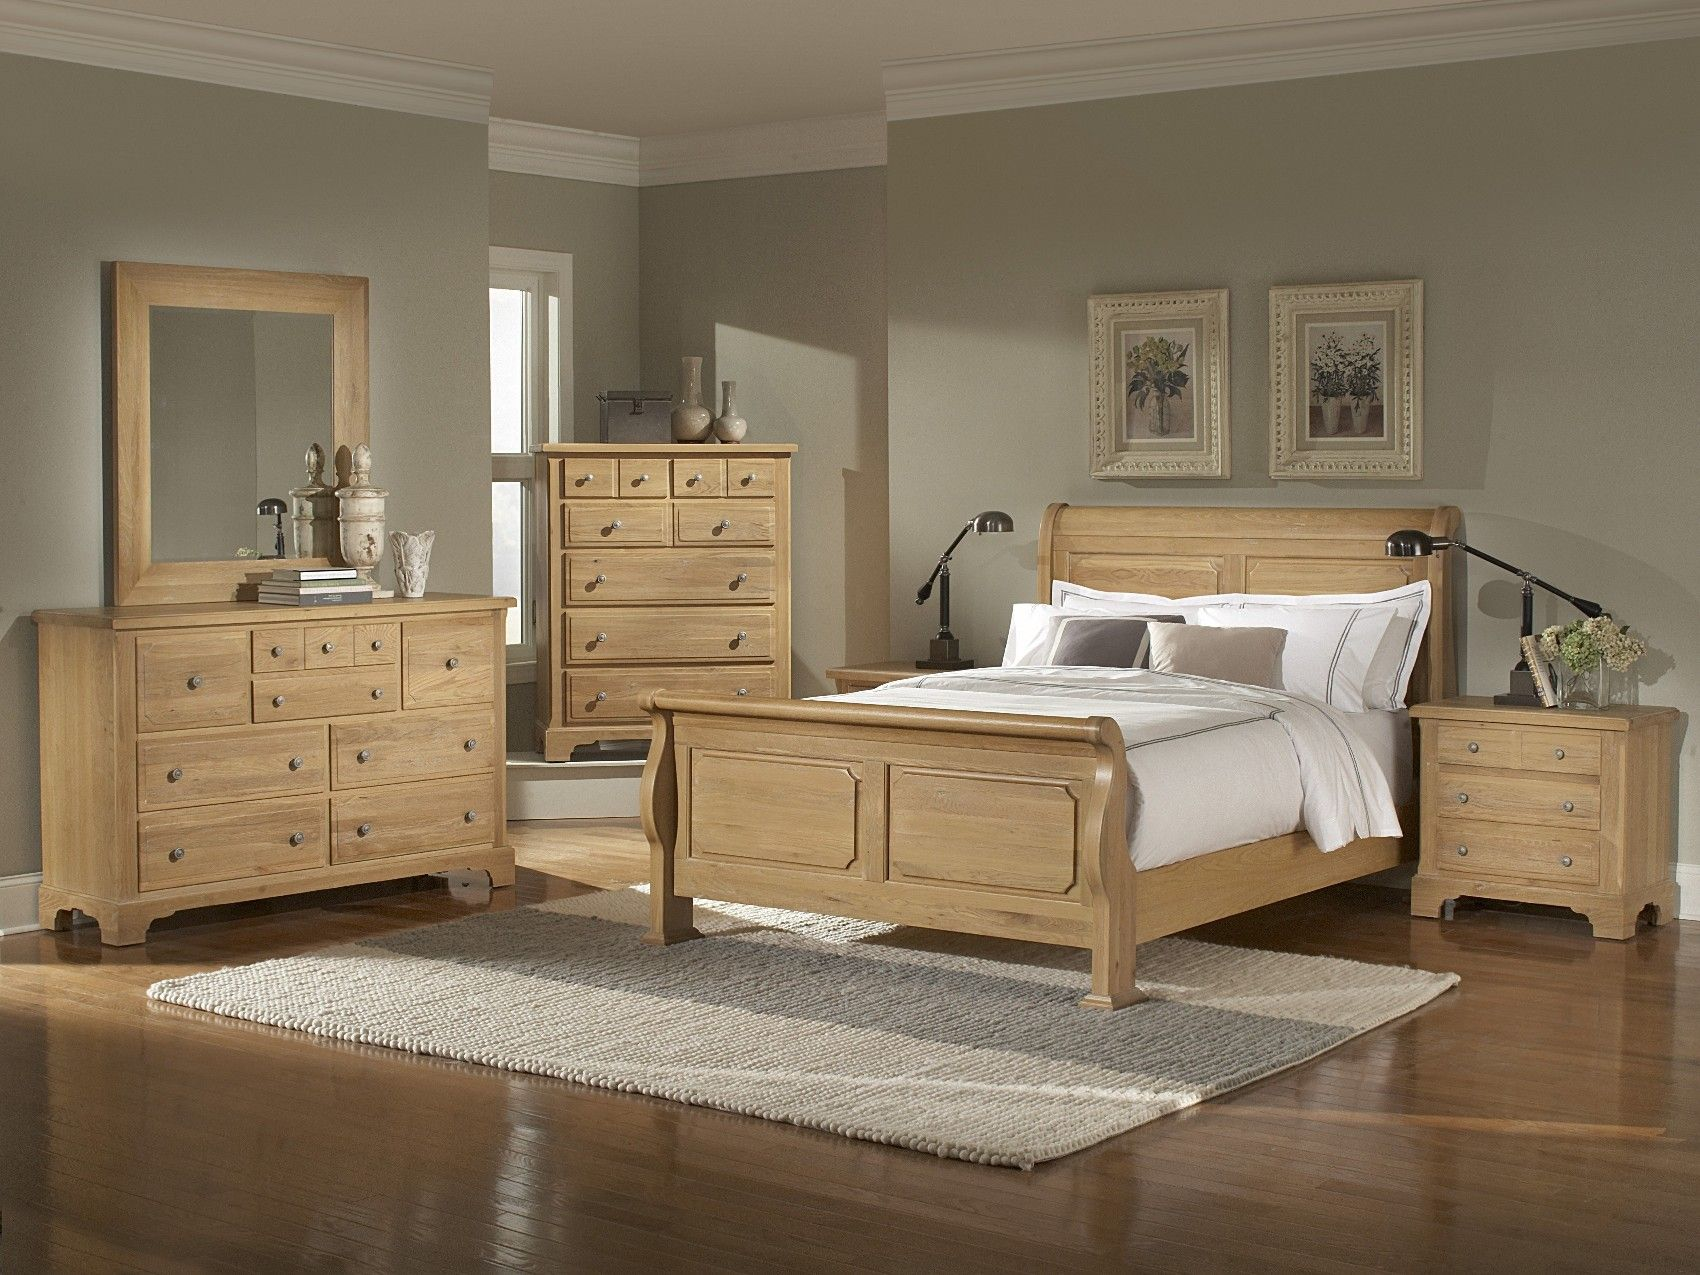 wooden bedroom sets. oak bedroom furniture sets  Washed Oak Queen Sleigh Bedroom Group A at Best 25 ideas on Pinterest Repainting